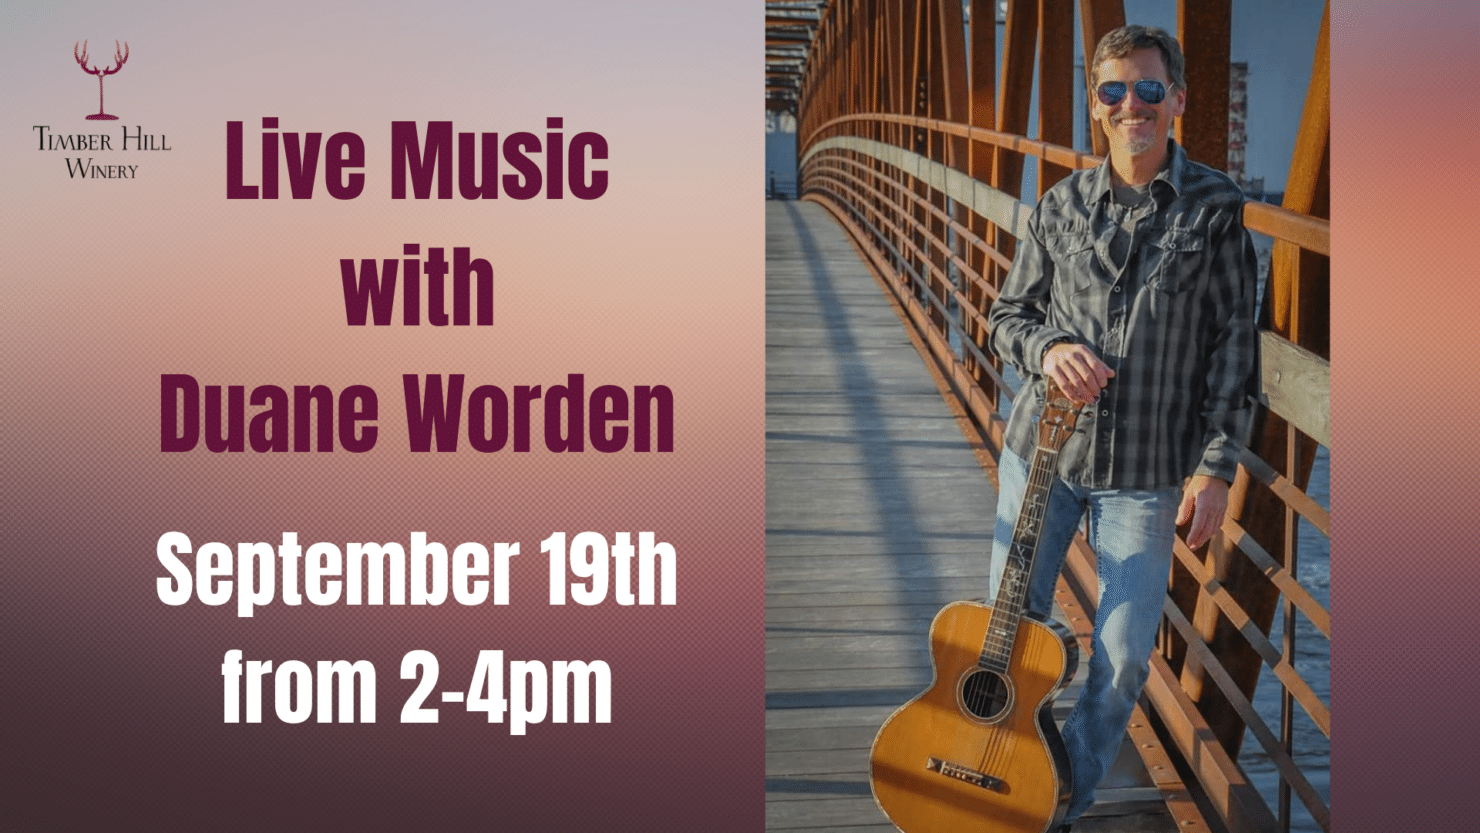 Live Music with Duane Worden at Timber Hill Winery